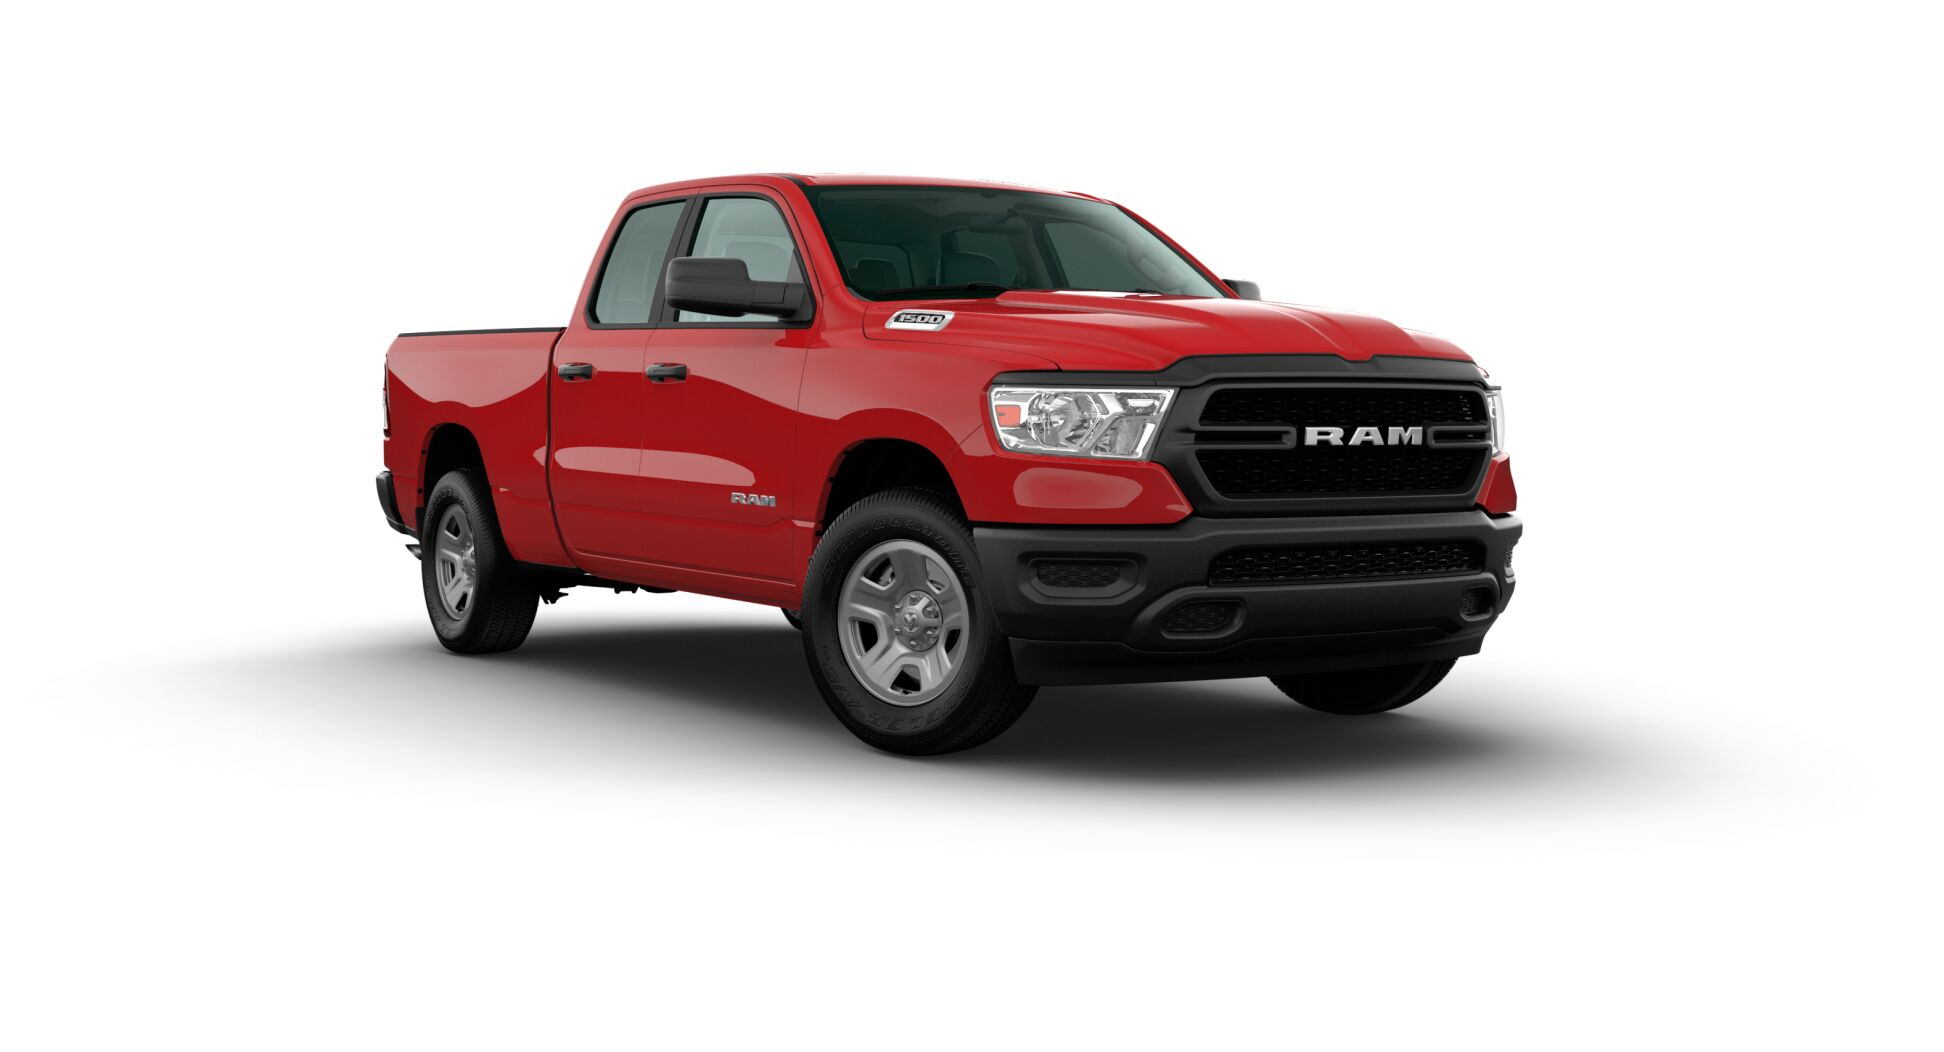 2020 RAM 1500 Flame Red